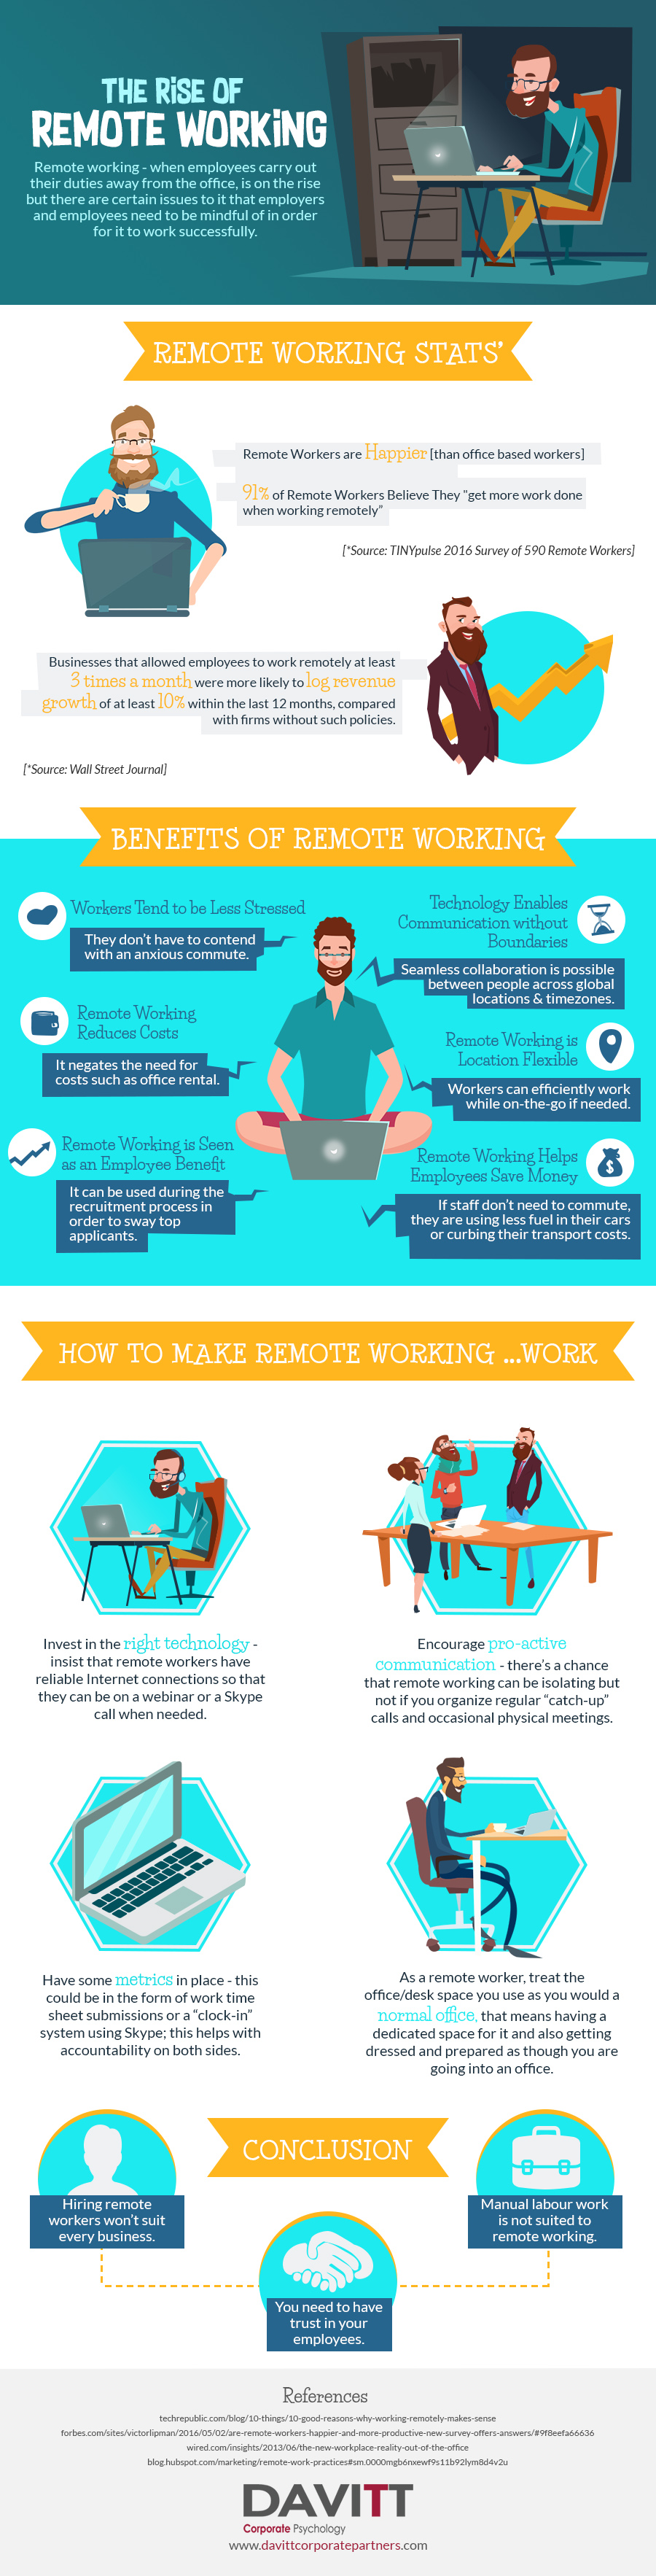 Why-Remote-Working-Is-On-The-Rise-Infographic